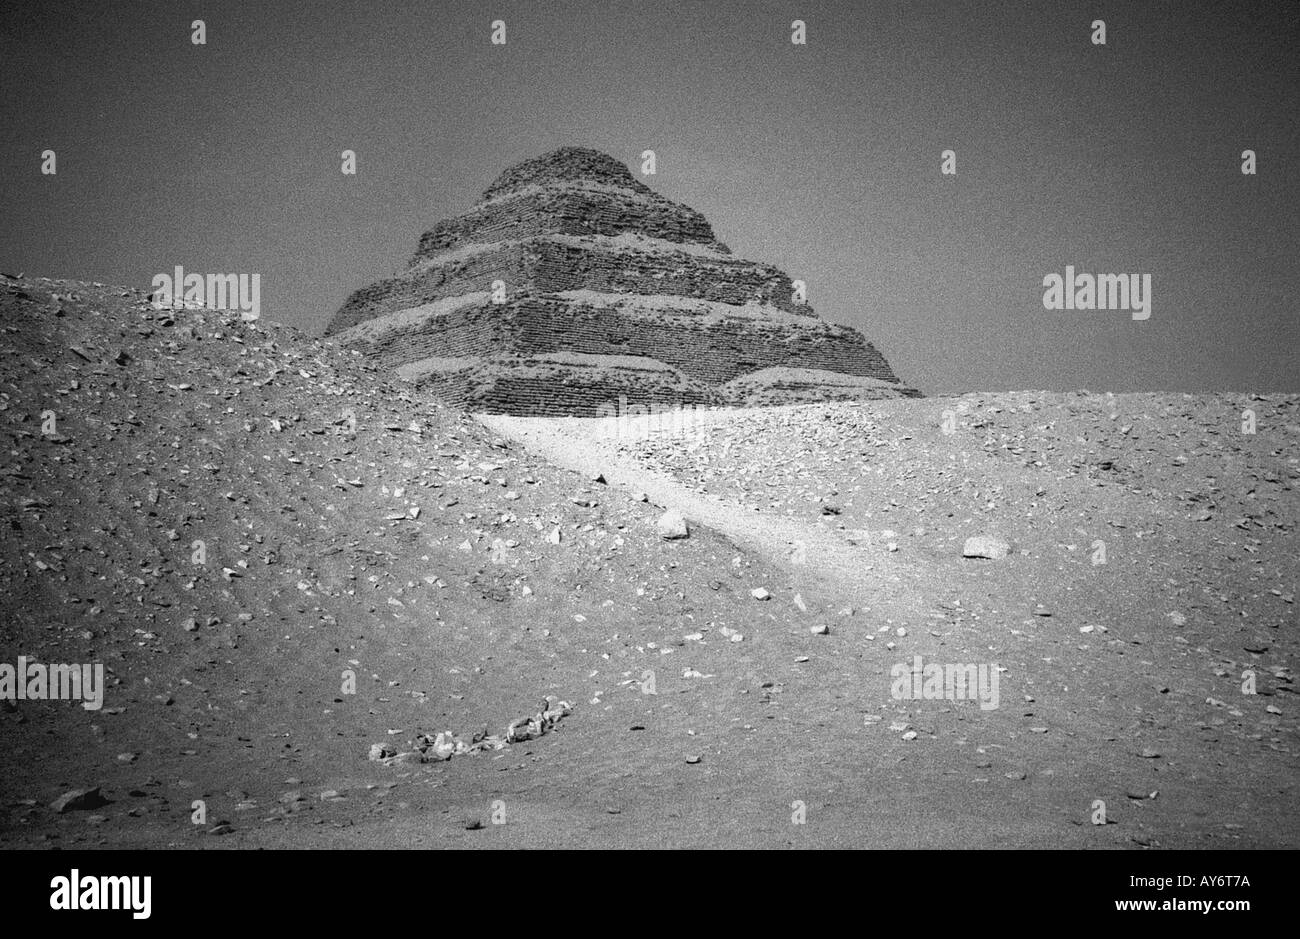 Djoser's step Pyramid of Zoser Sakkara Saqqara Saqqarah Cairo Arab Republic of Egypt Egyptian North Africa Middle East - Stock Image